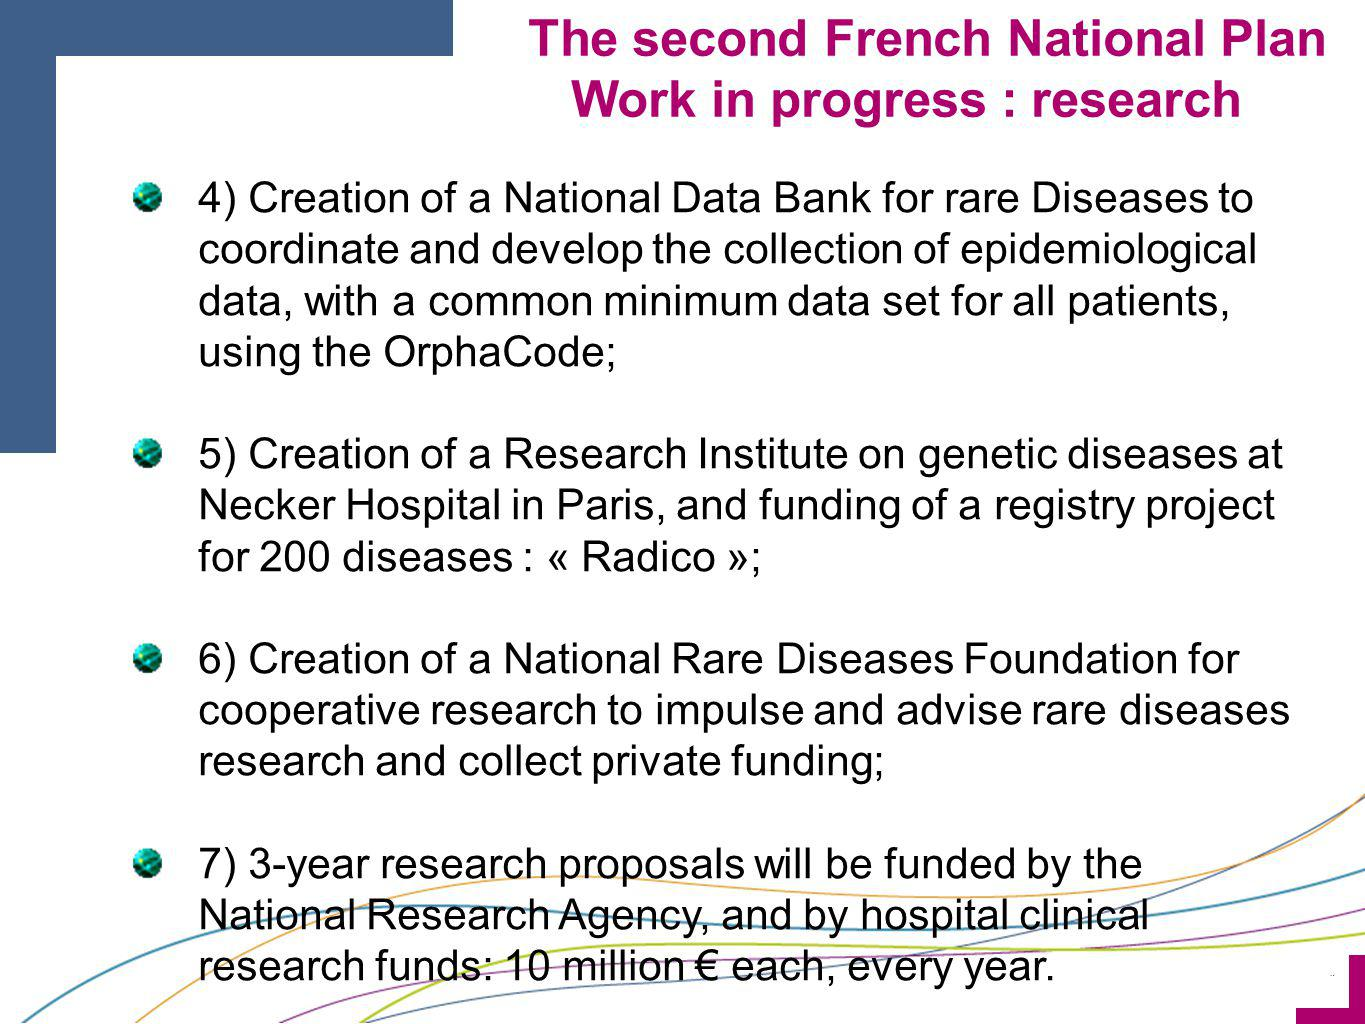 ¨ 8) Exchange of experiences and participation to the actions of the European Committee of Experts: Recommendations on quality criteria for centres of expertise and European reference networks, Implementation of plans and strategies for rare diseases at national level, standardisation of rare disease nomenclature at international level, mapping the provision of specialised social services and integration of rare diseases into mainstream social policies and services ( led by EURORDIS).